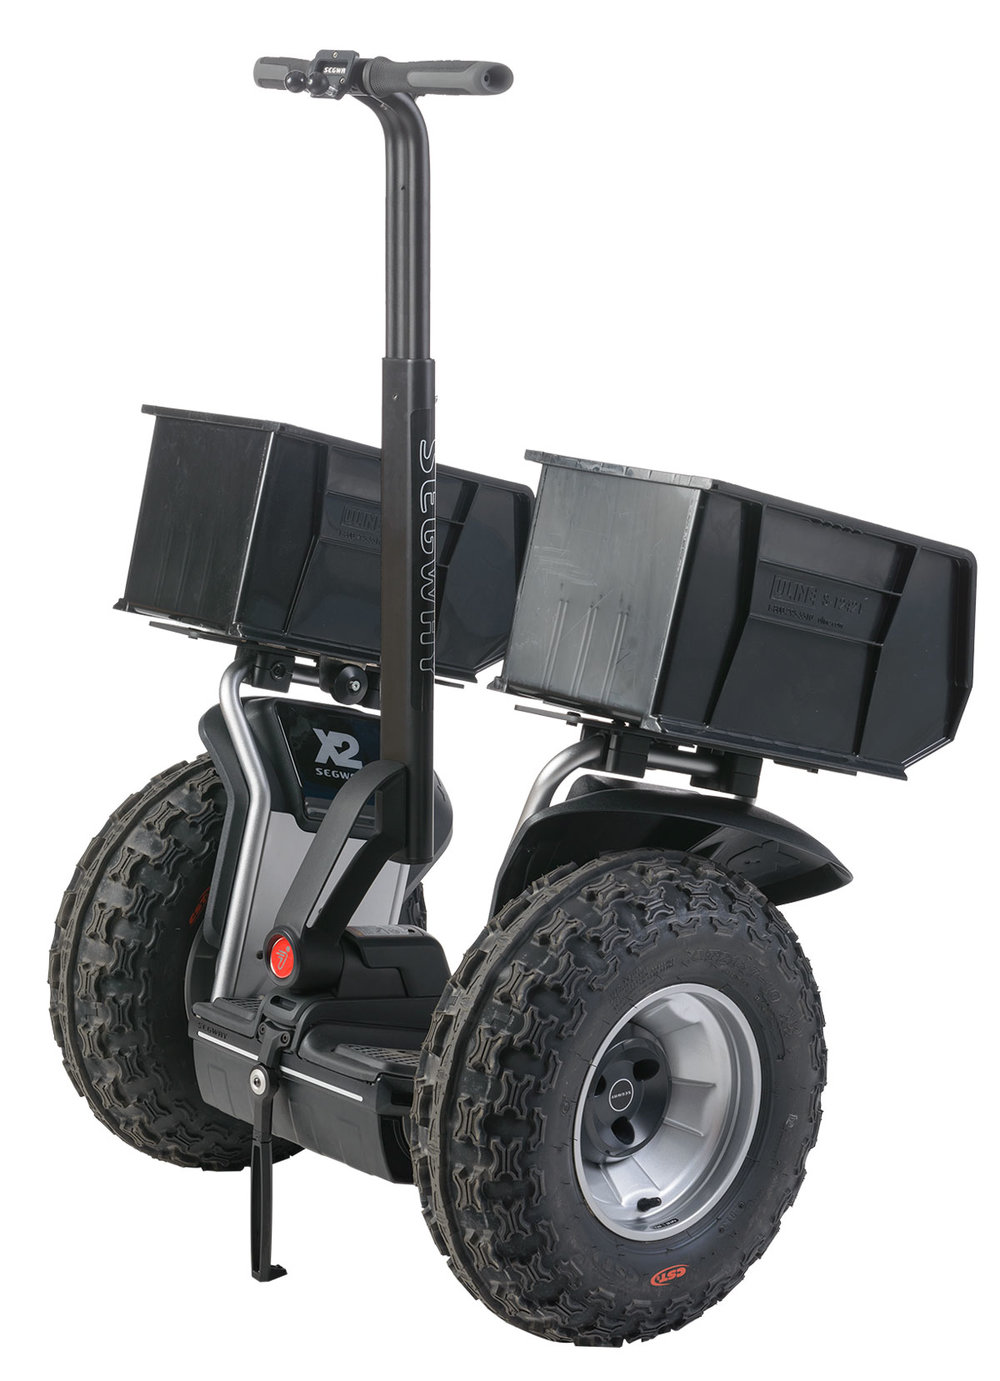 Segway X2 SE Commercial